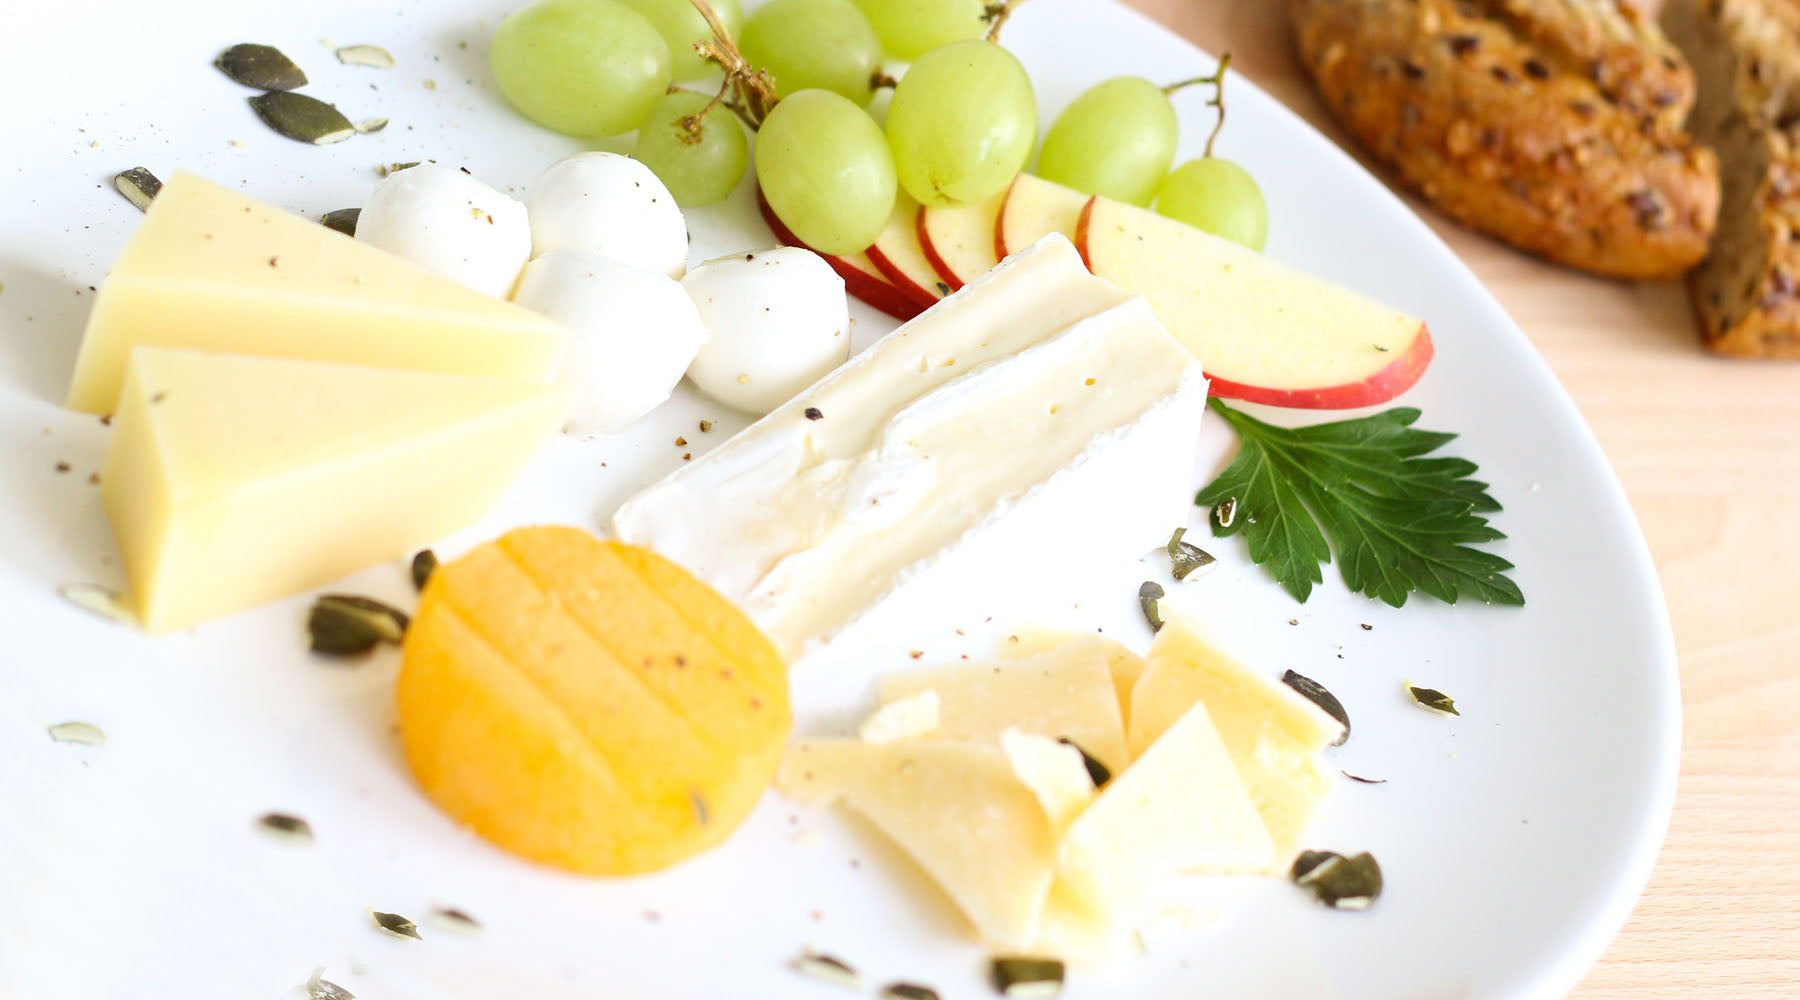 plate of various cheeses